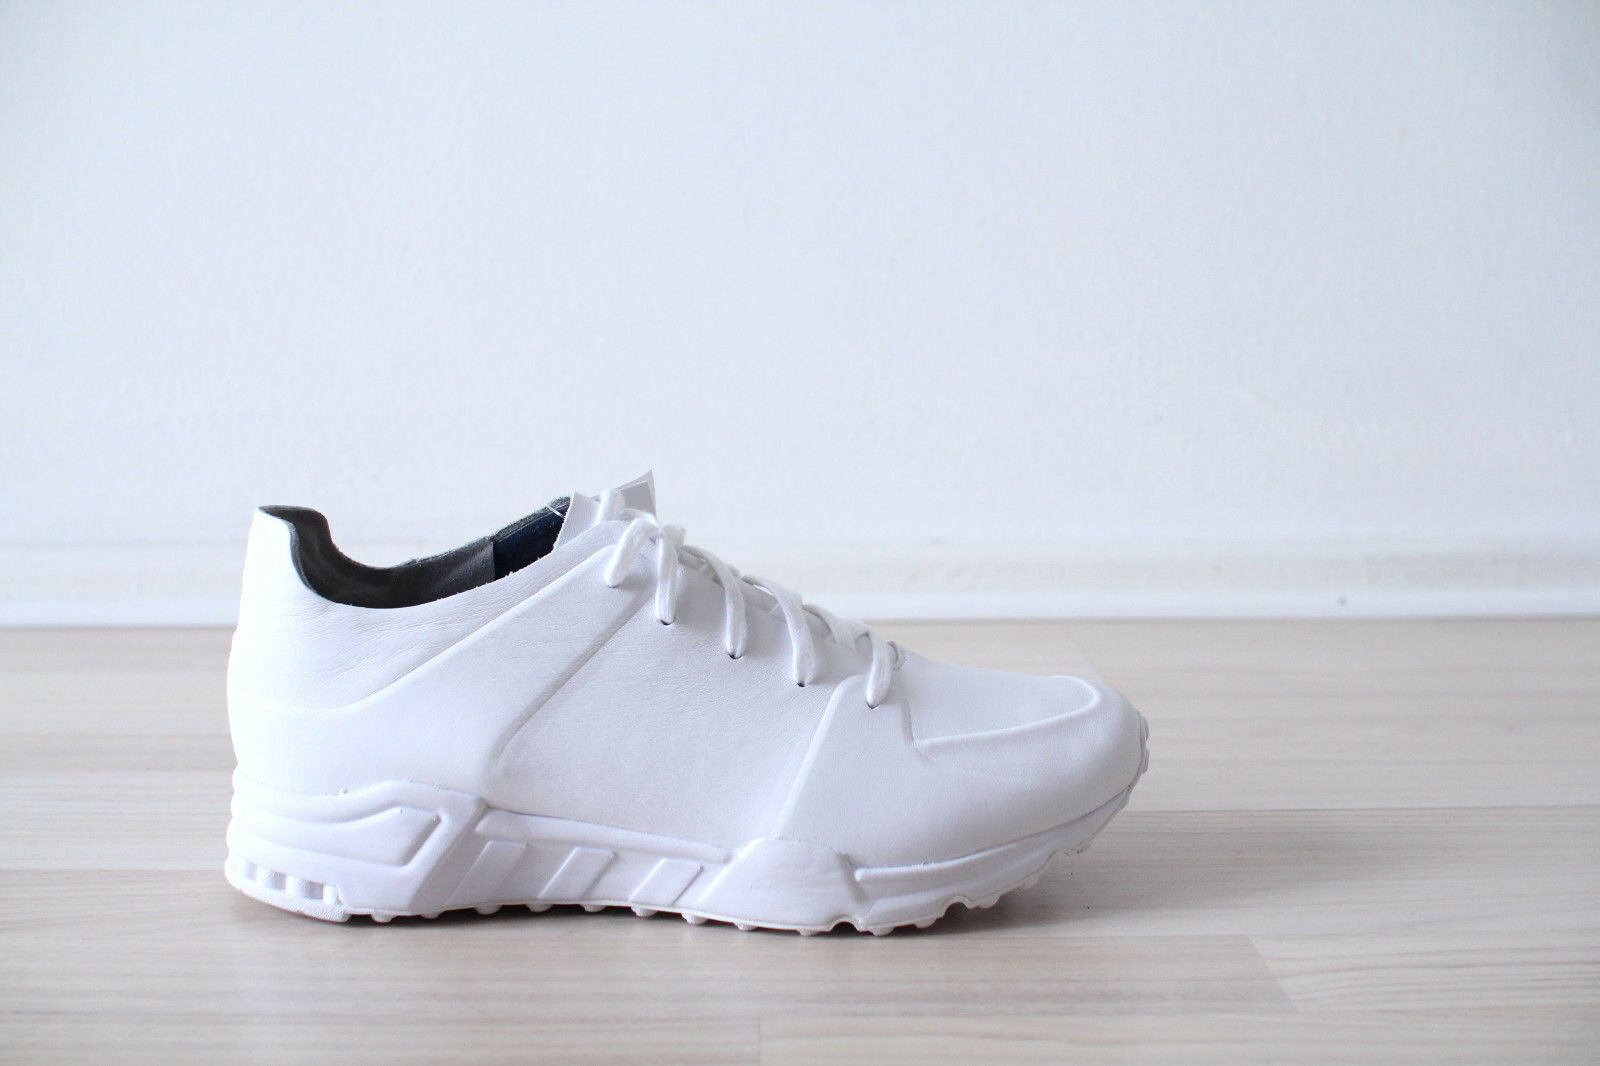 Adidas equipment support 93 nuude blanc taille 40,42 NOUVEAU & NEUF dans sa boîte s76702